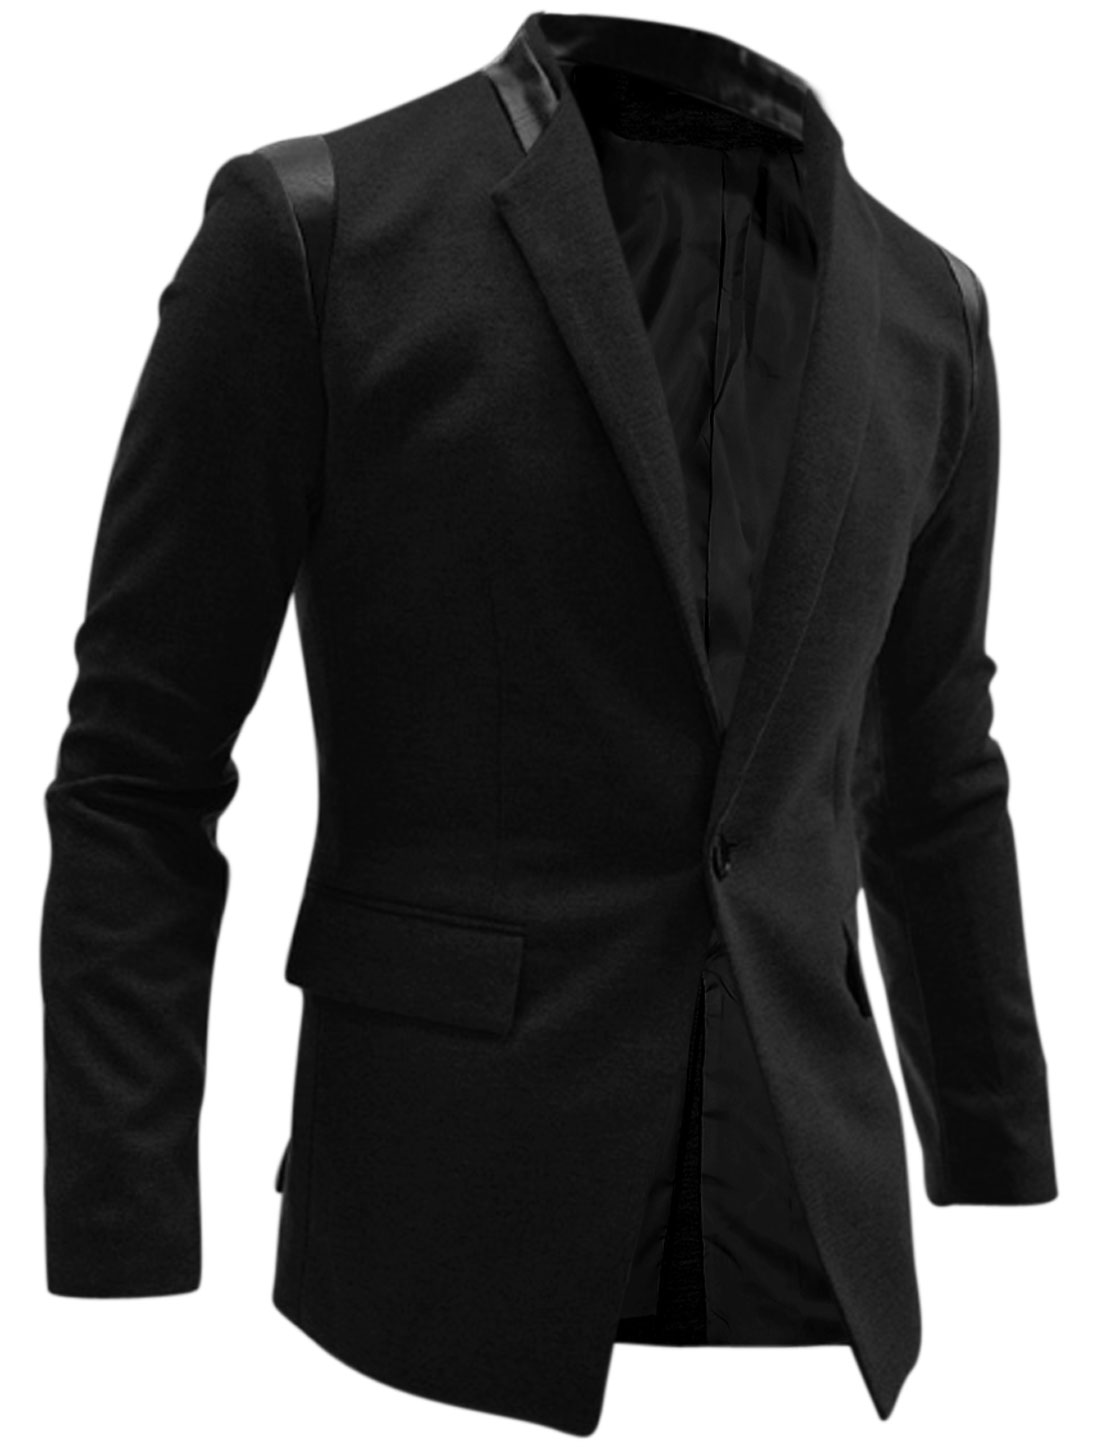 Men Two Flap Pockets Single Button Padded Shoulder Blazer Jacket Black M